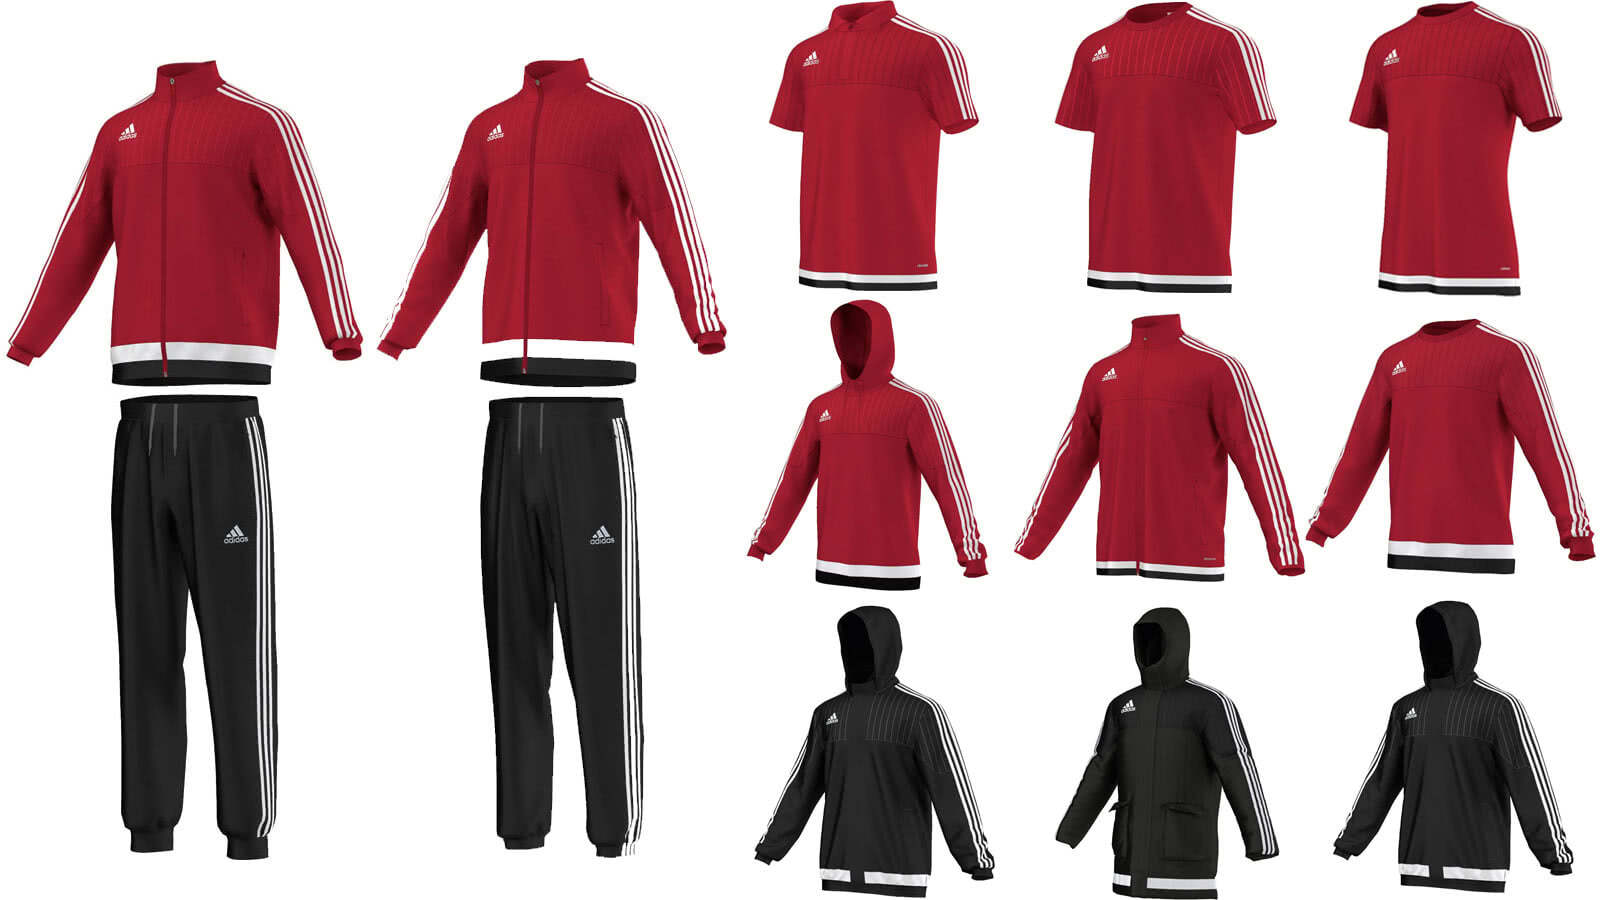 new high quality first look limited guantity Adidas Tiro 15 Teamsport Linie - Sportartikel und ...